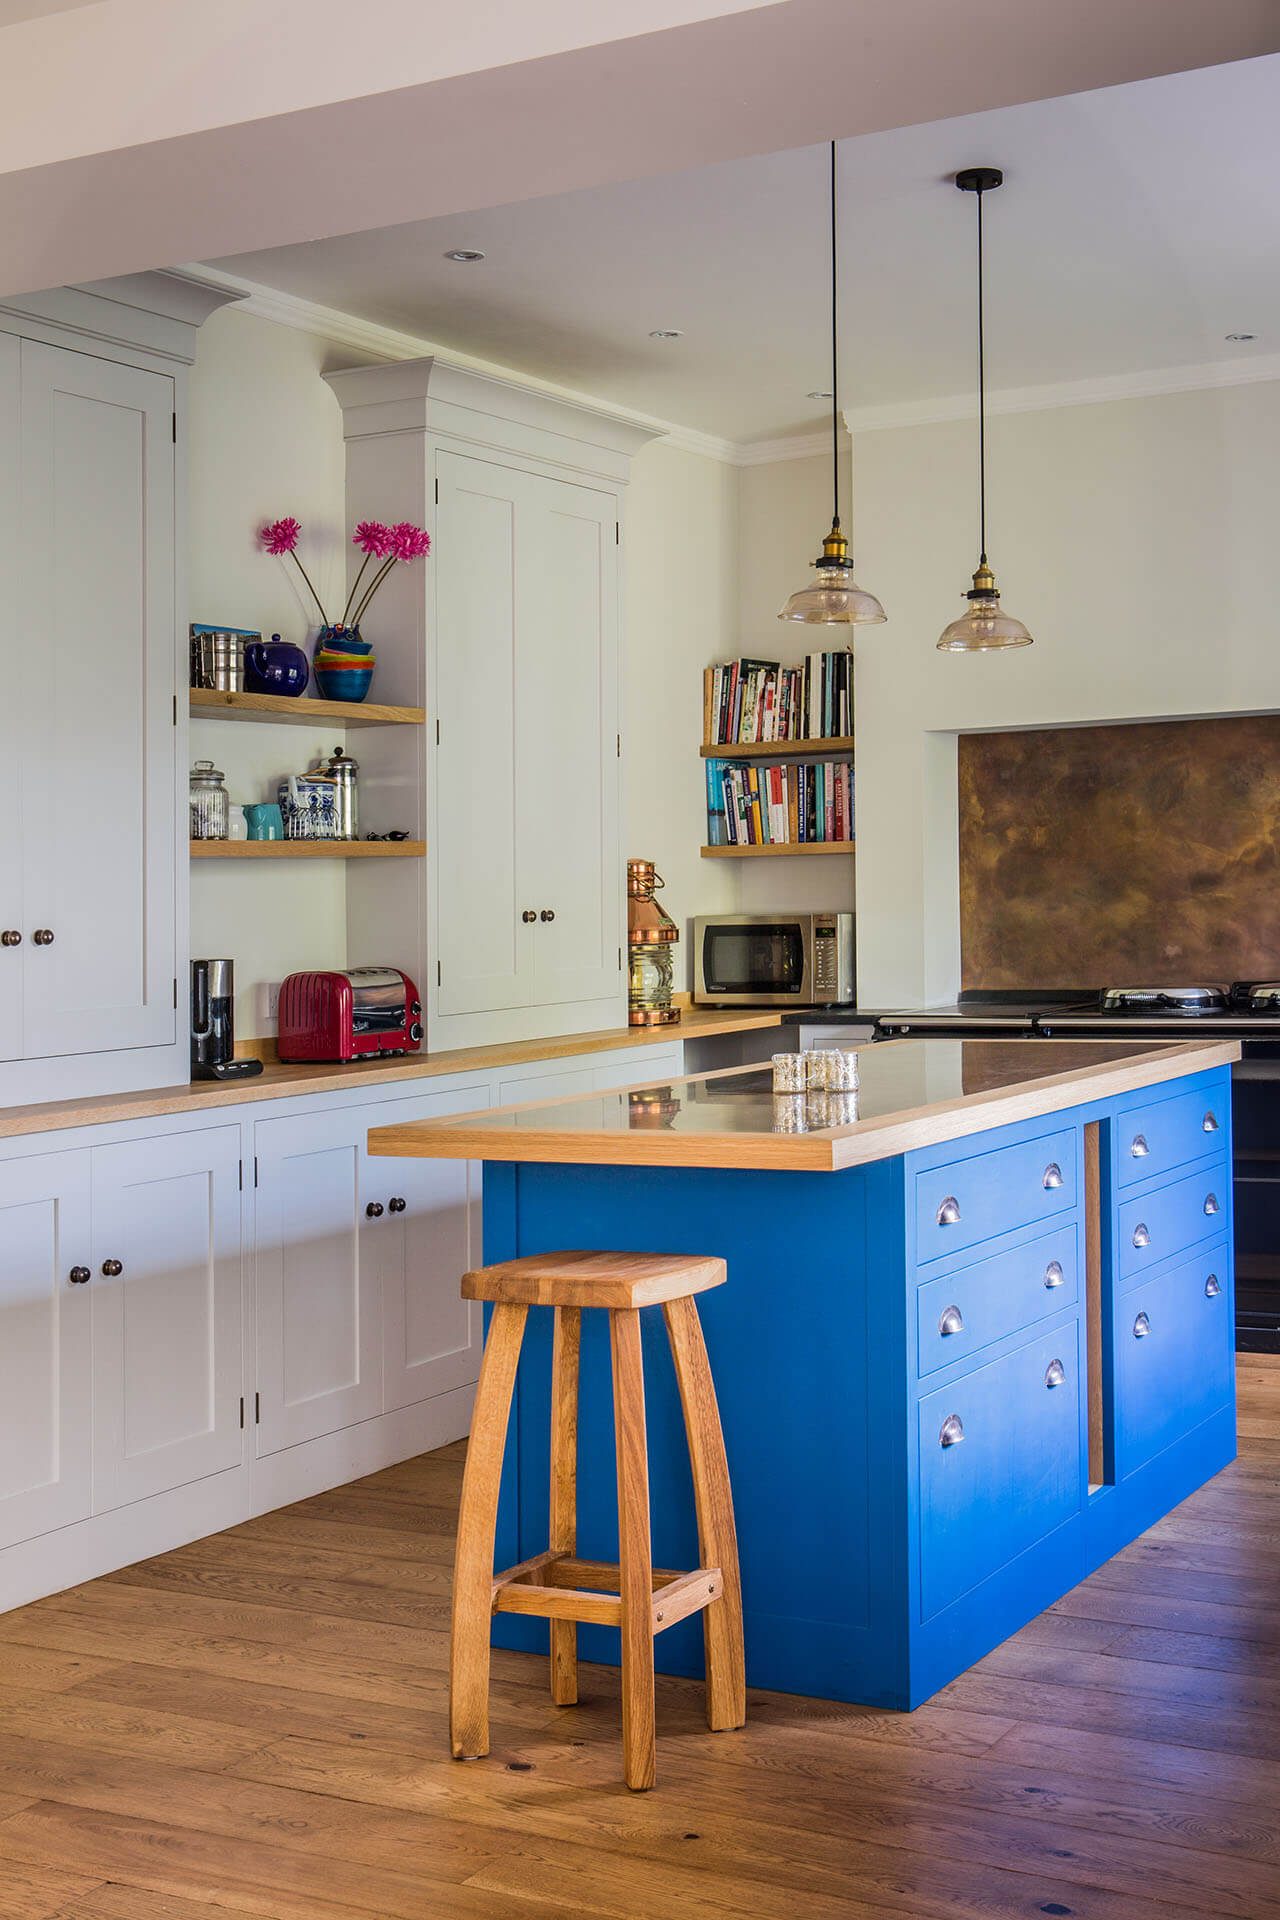 Antiqued brass contemporary kitchen with tall half larder cabinets and blue kitchen island